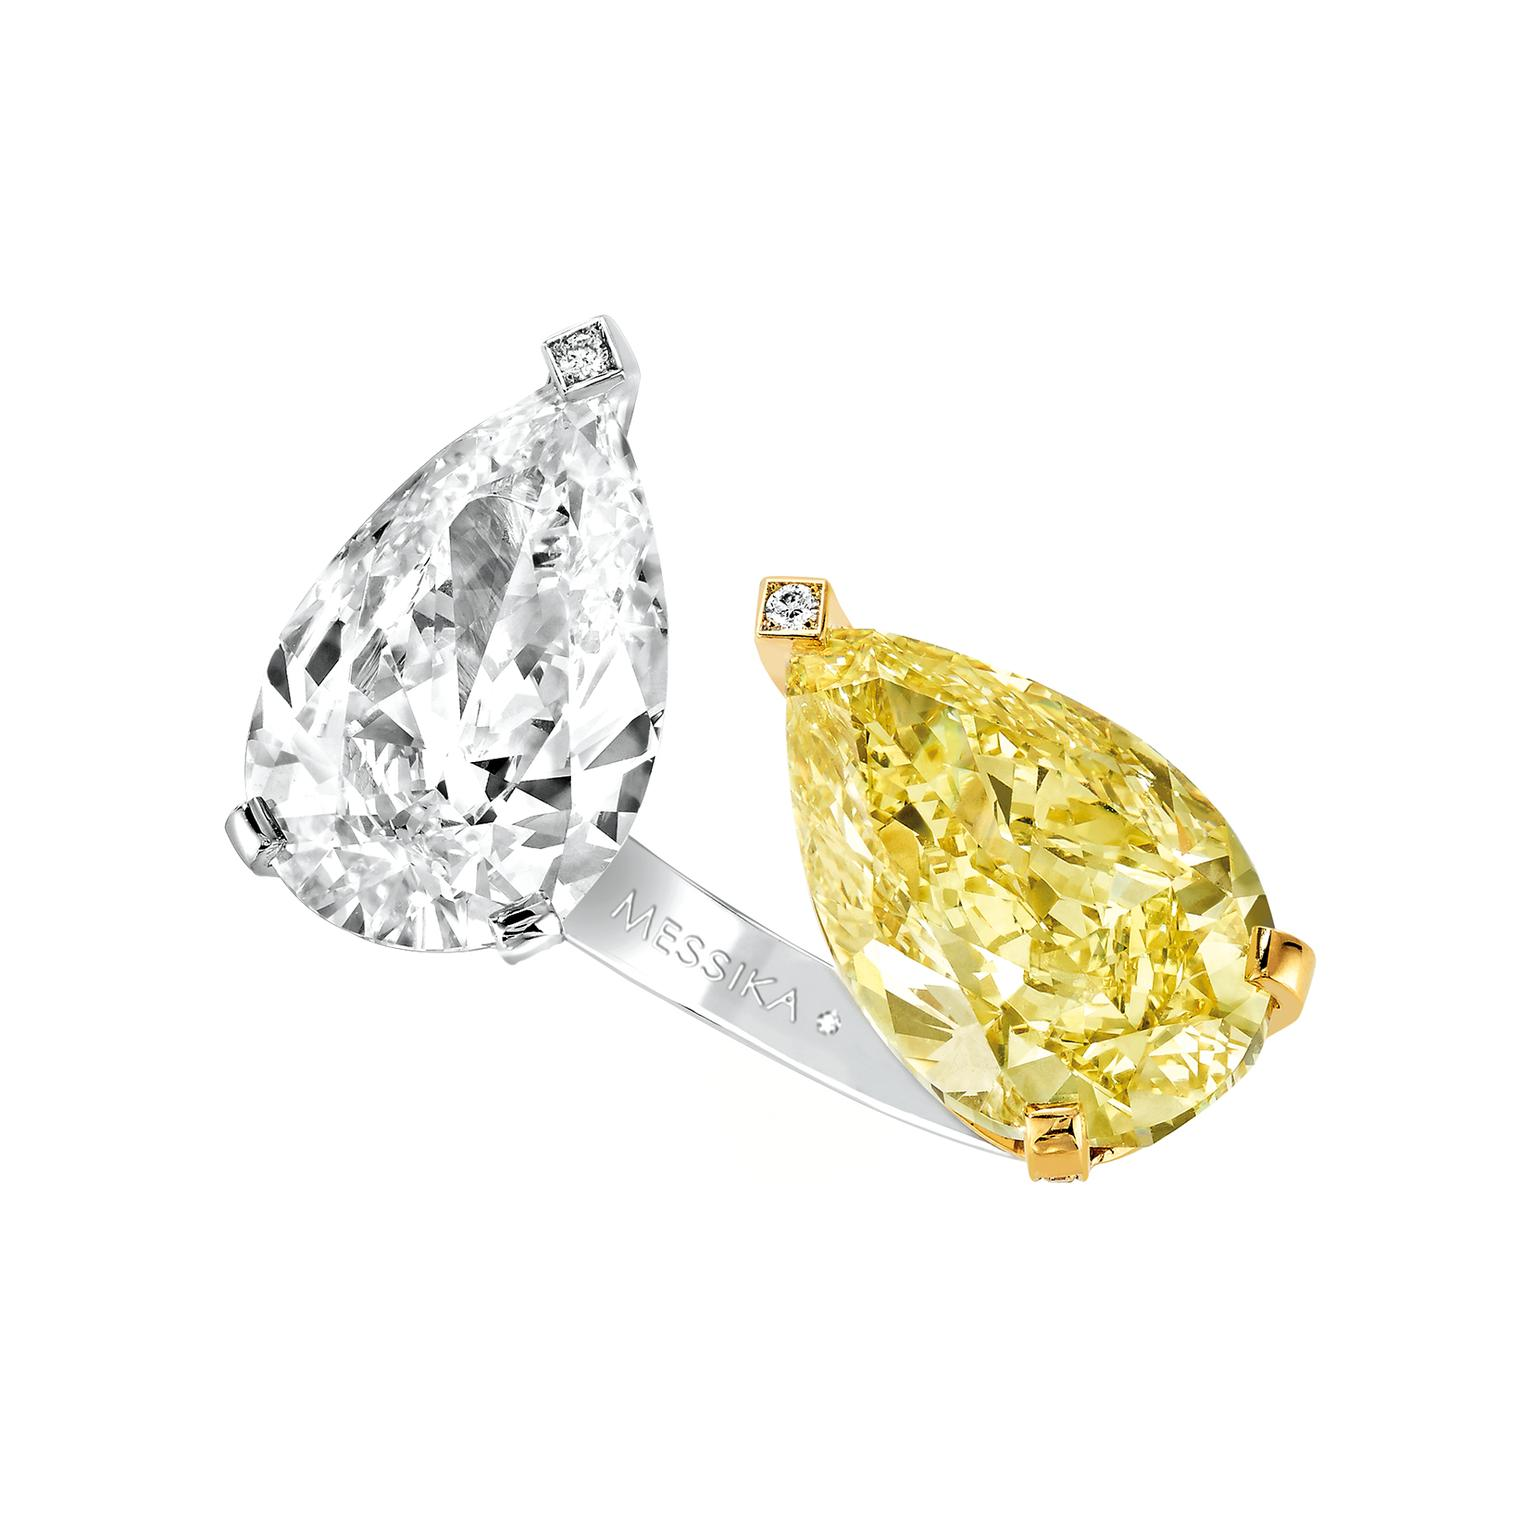 Messika yellow and white diamond toi et moi ring